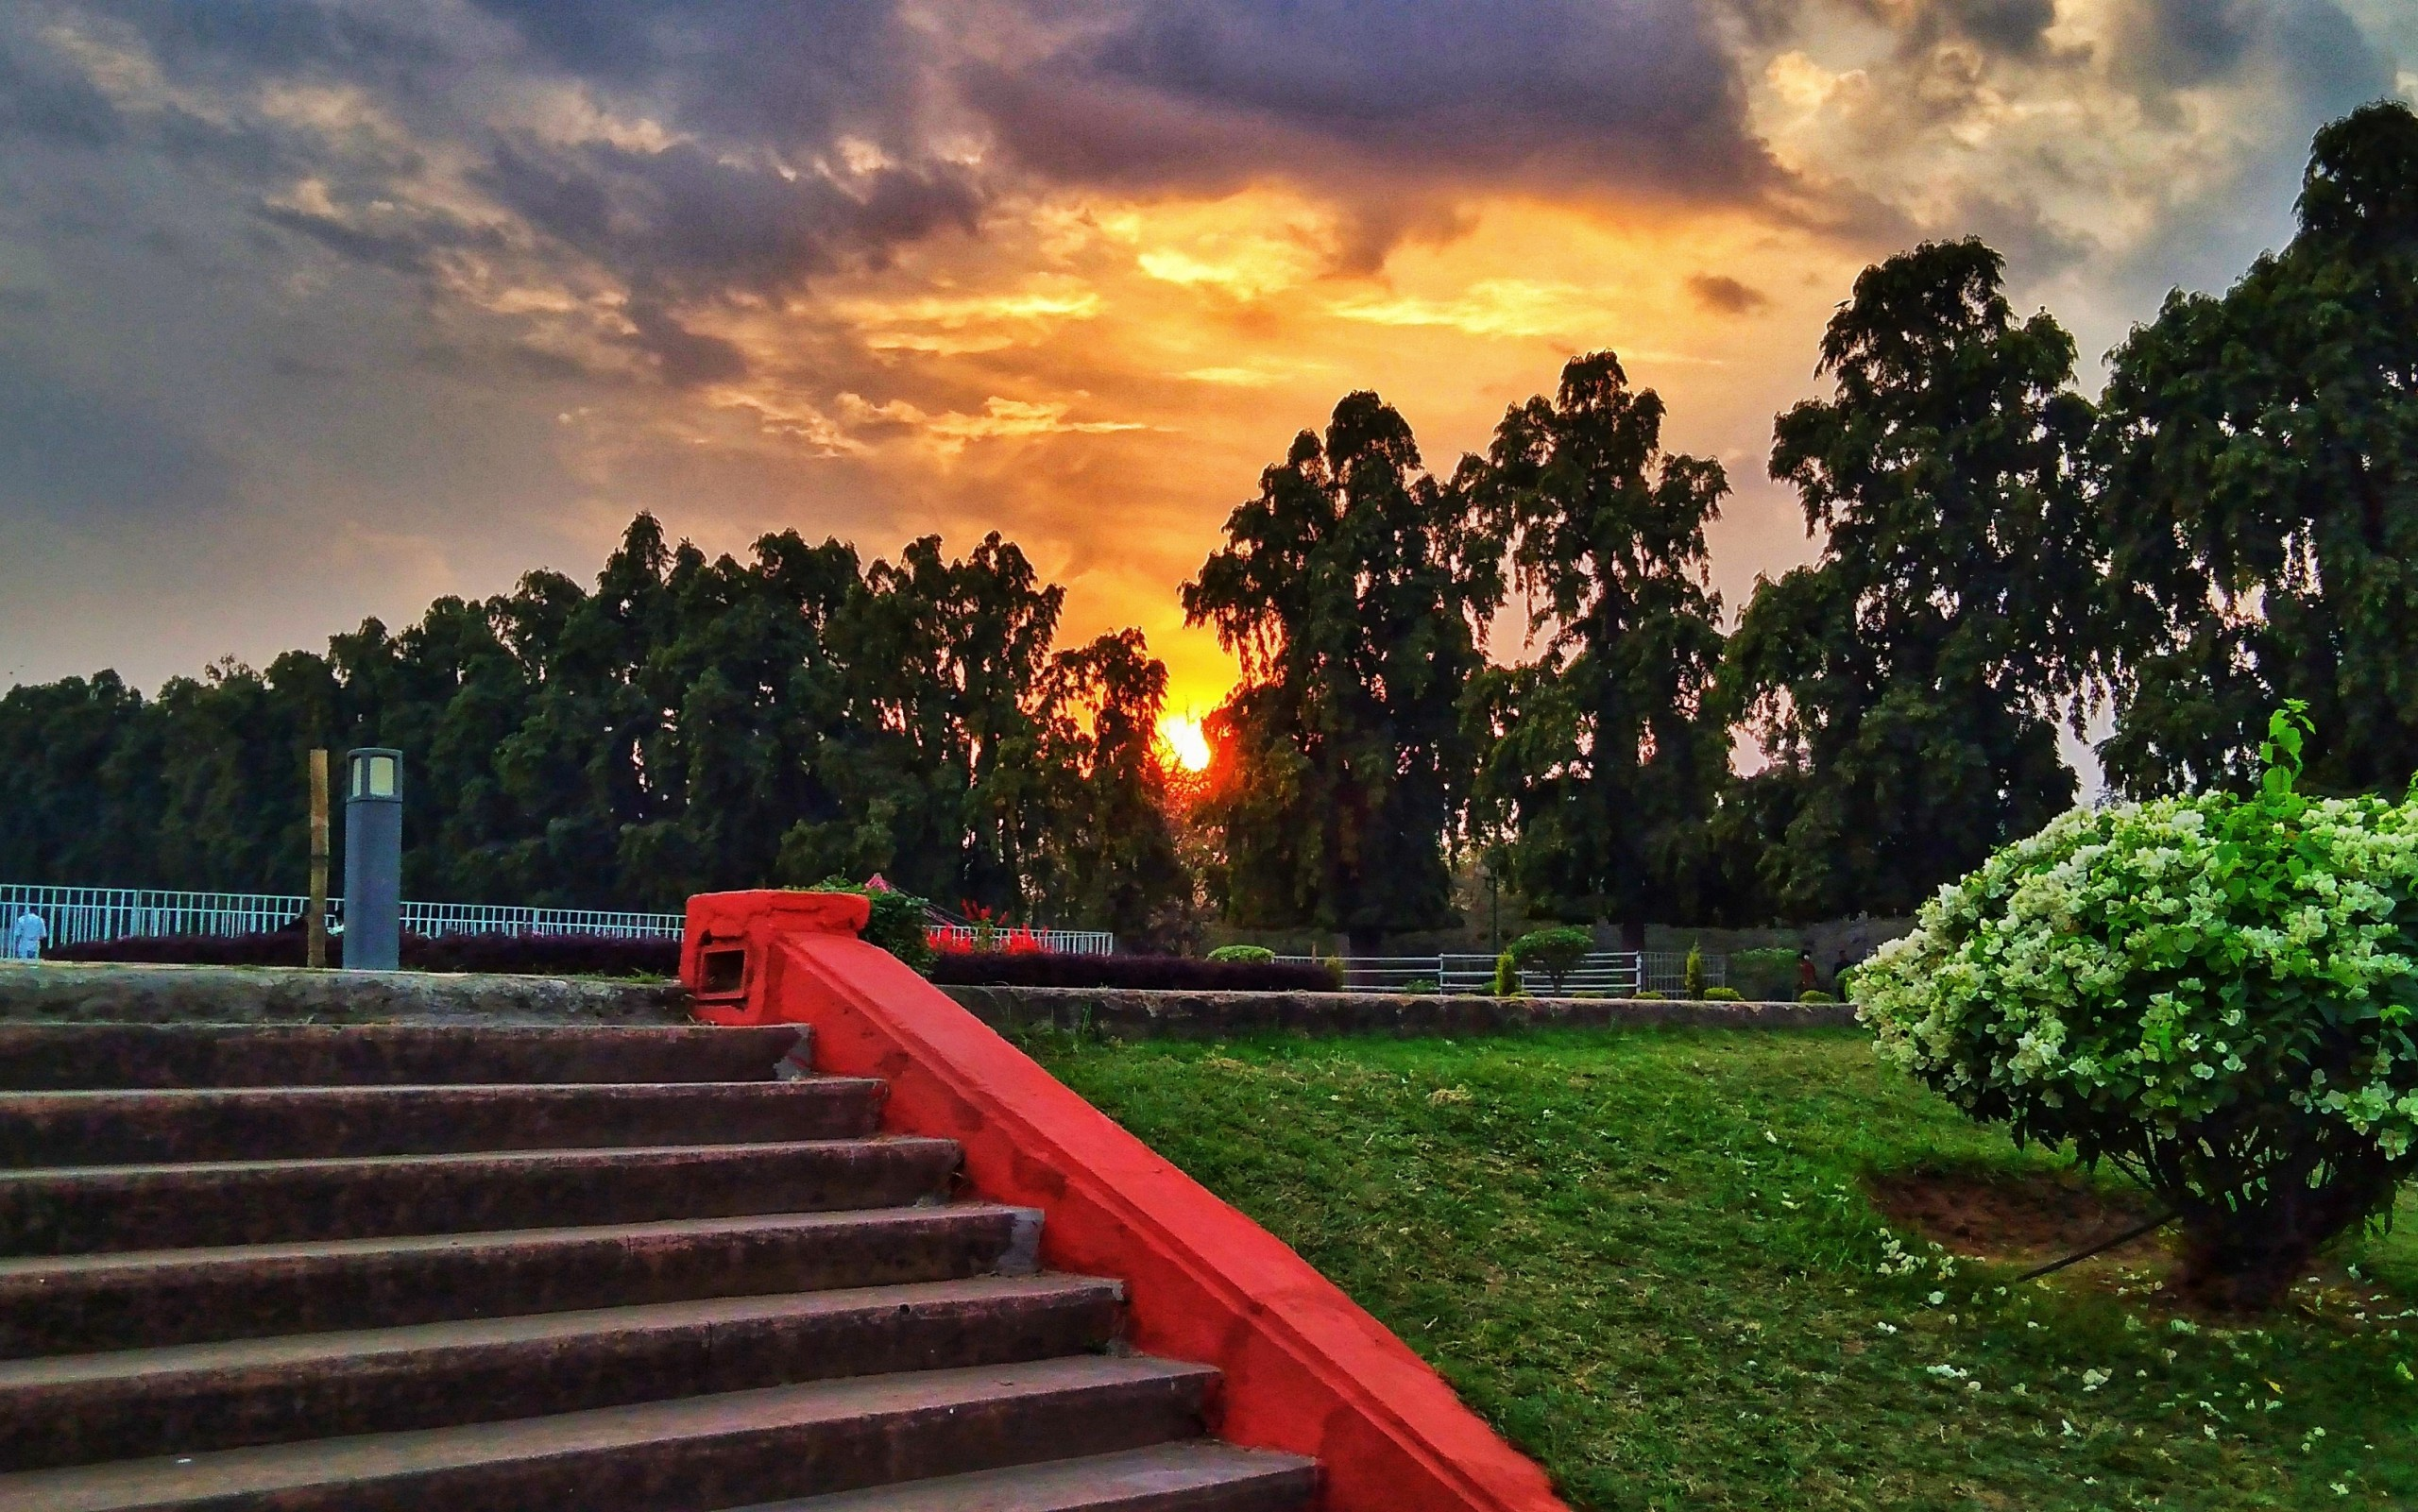 Sunset in the public park